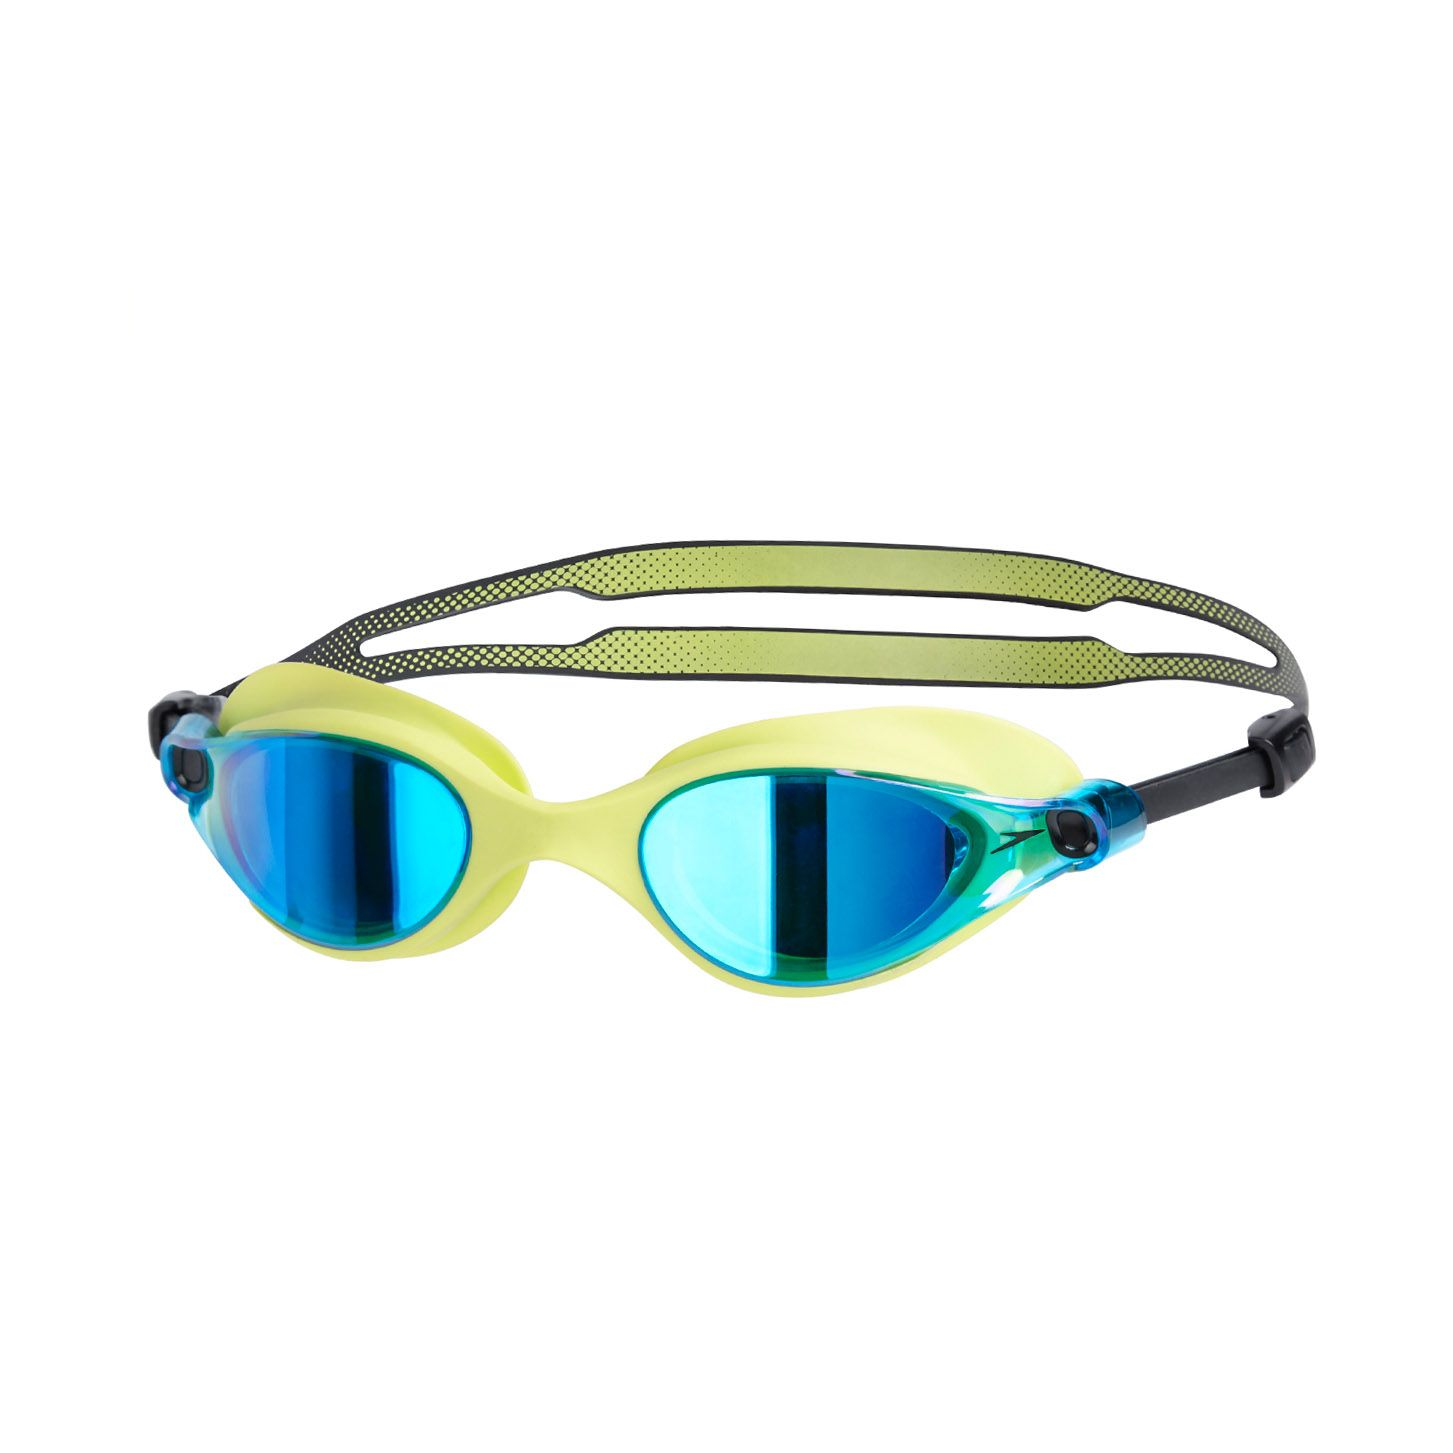 speedo v class vue mirror swimming goggles